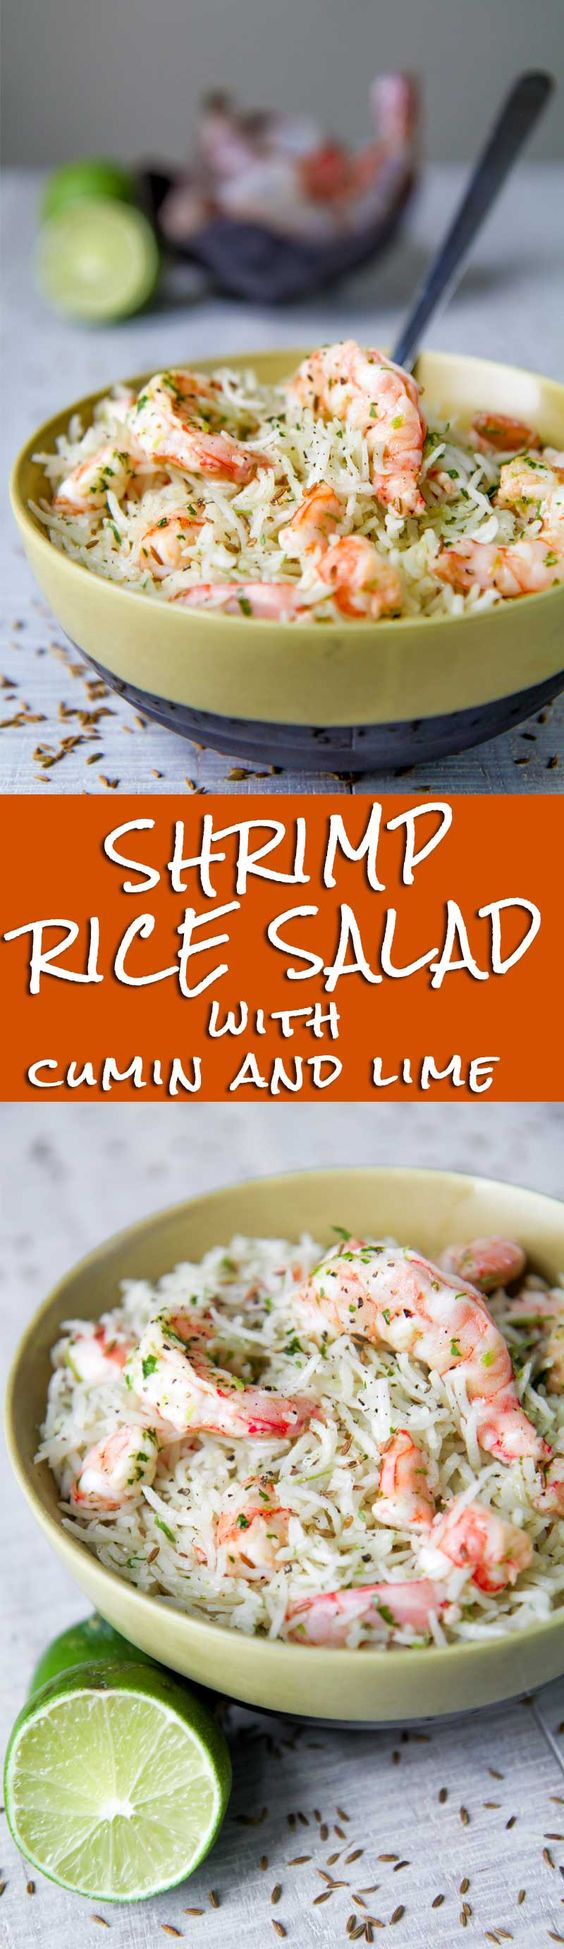 SHRIMP RICE SALAD with lime and cumin dressing | Recipe ...